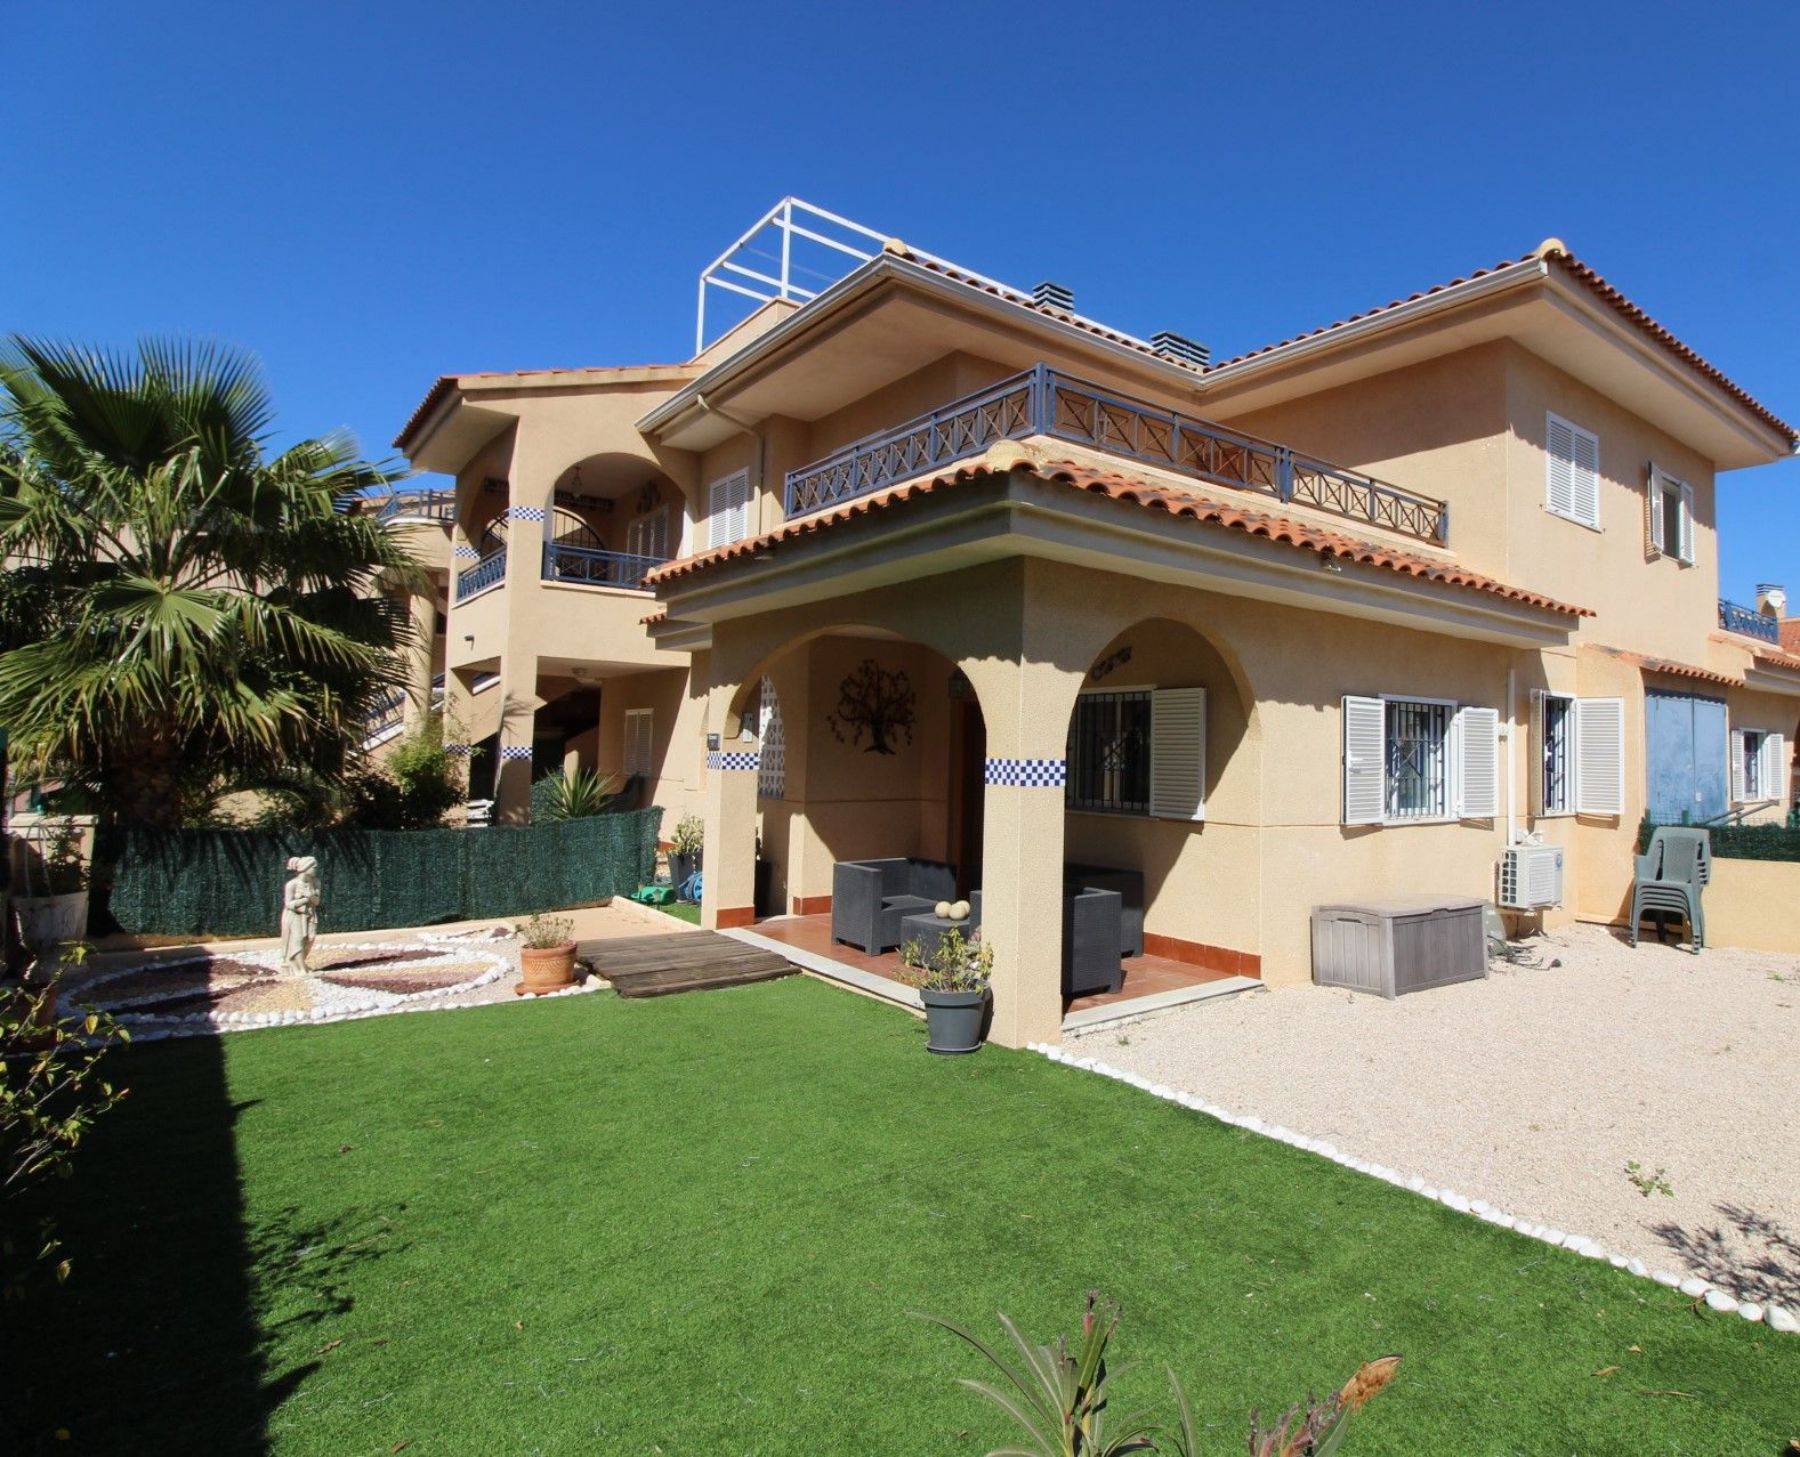 3 Bedrooms Townhouse For Sale in Santa Pola – Gran Alacant